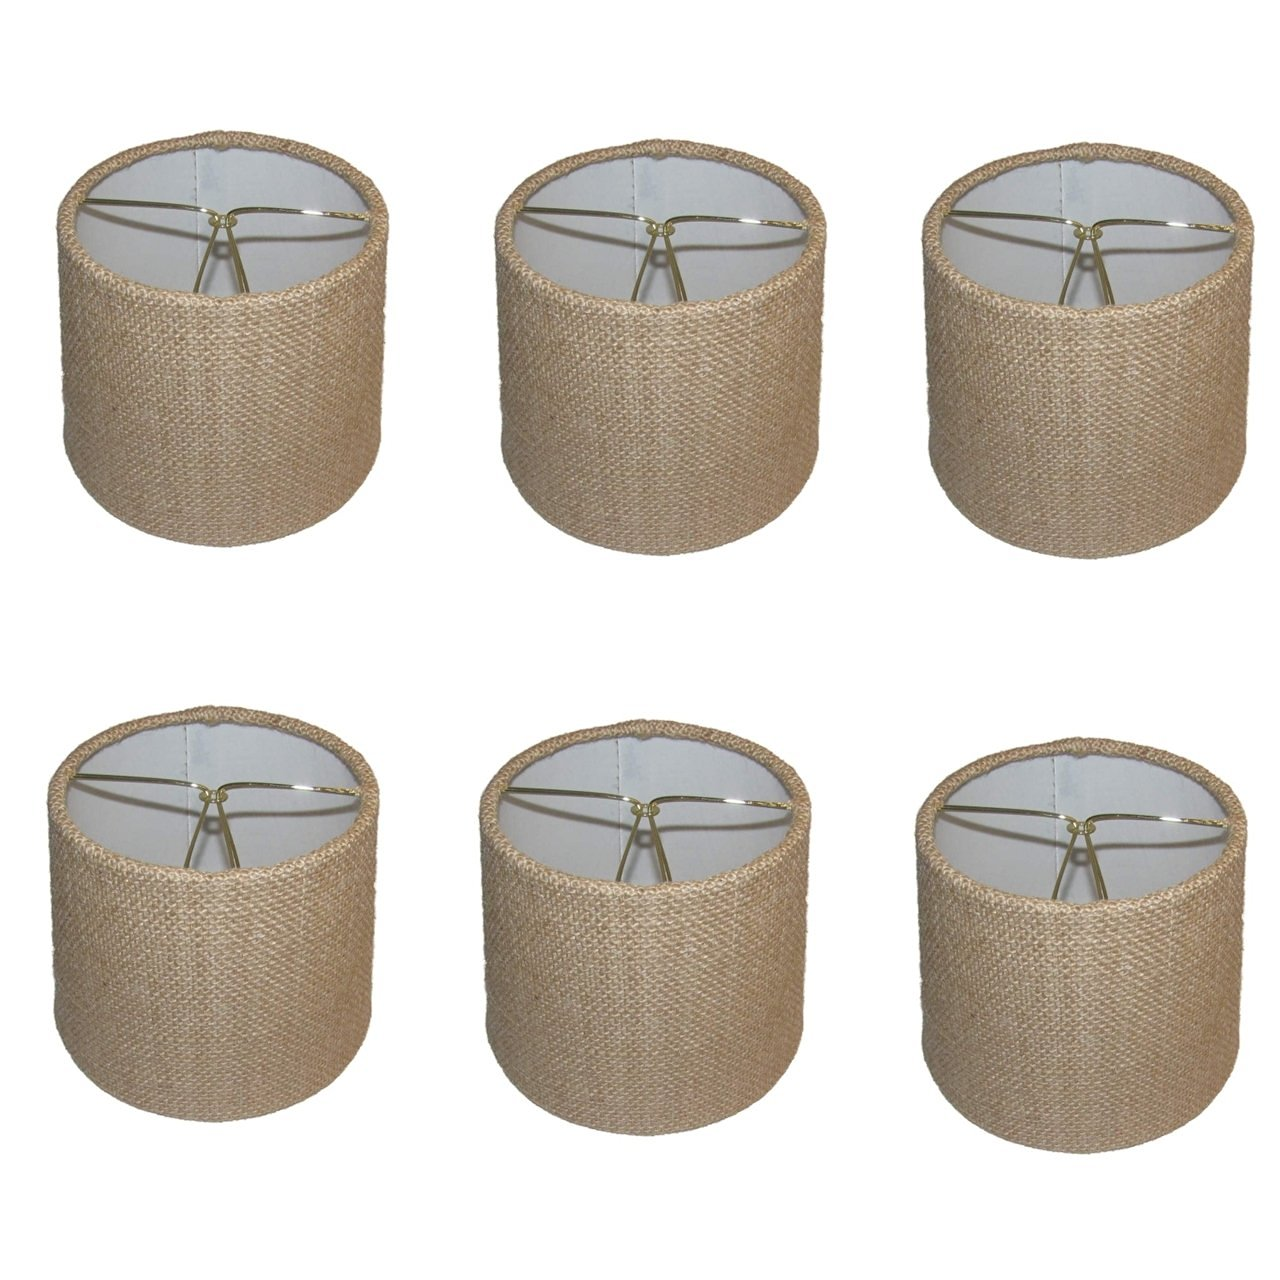 Cheap burlap chandelier shades find burlap chandelier shades deals get quotations upgradelights set of 6 rolled edge burlap drum chandelier shades 6 inch dia mozeypictures Image collections